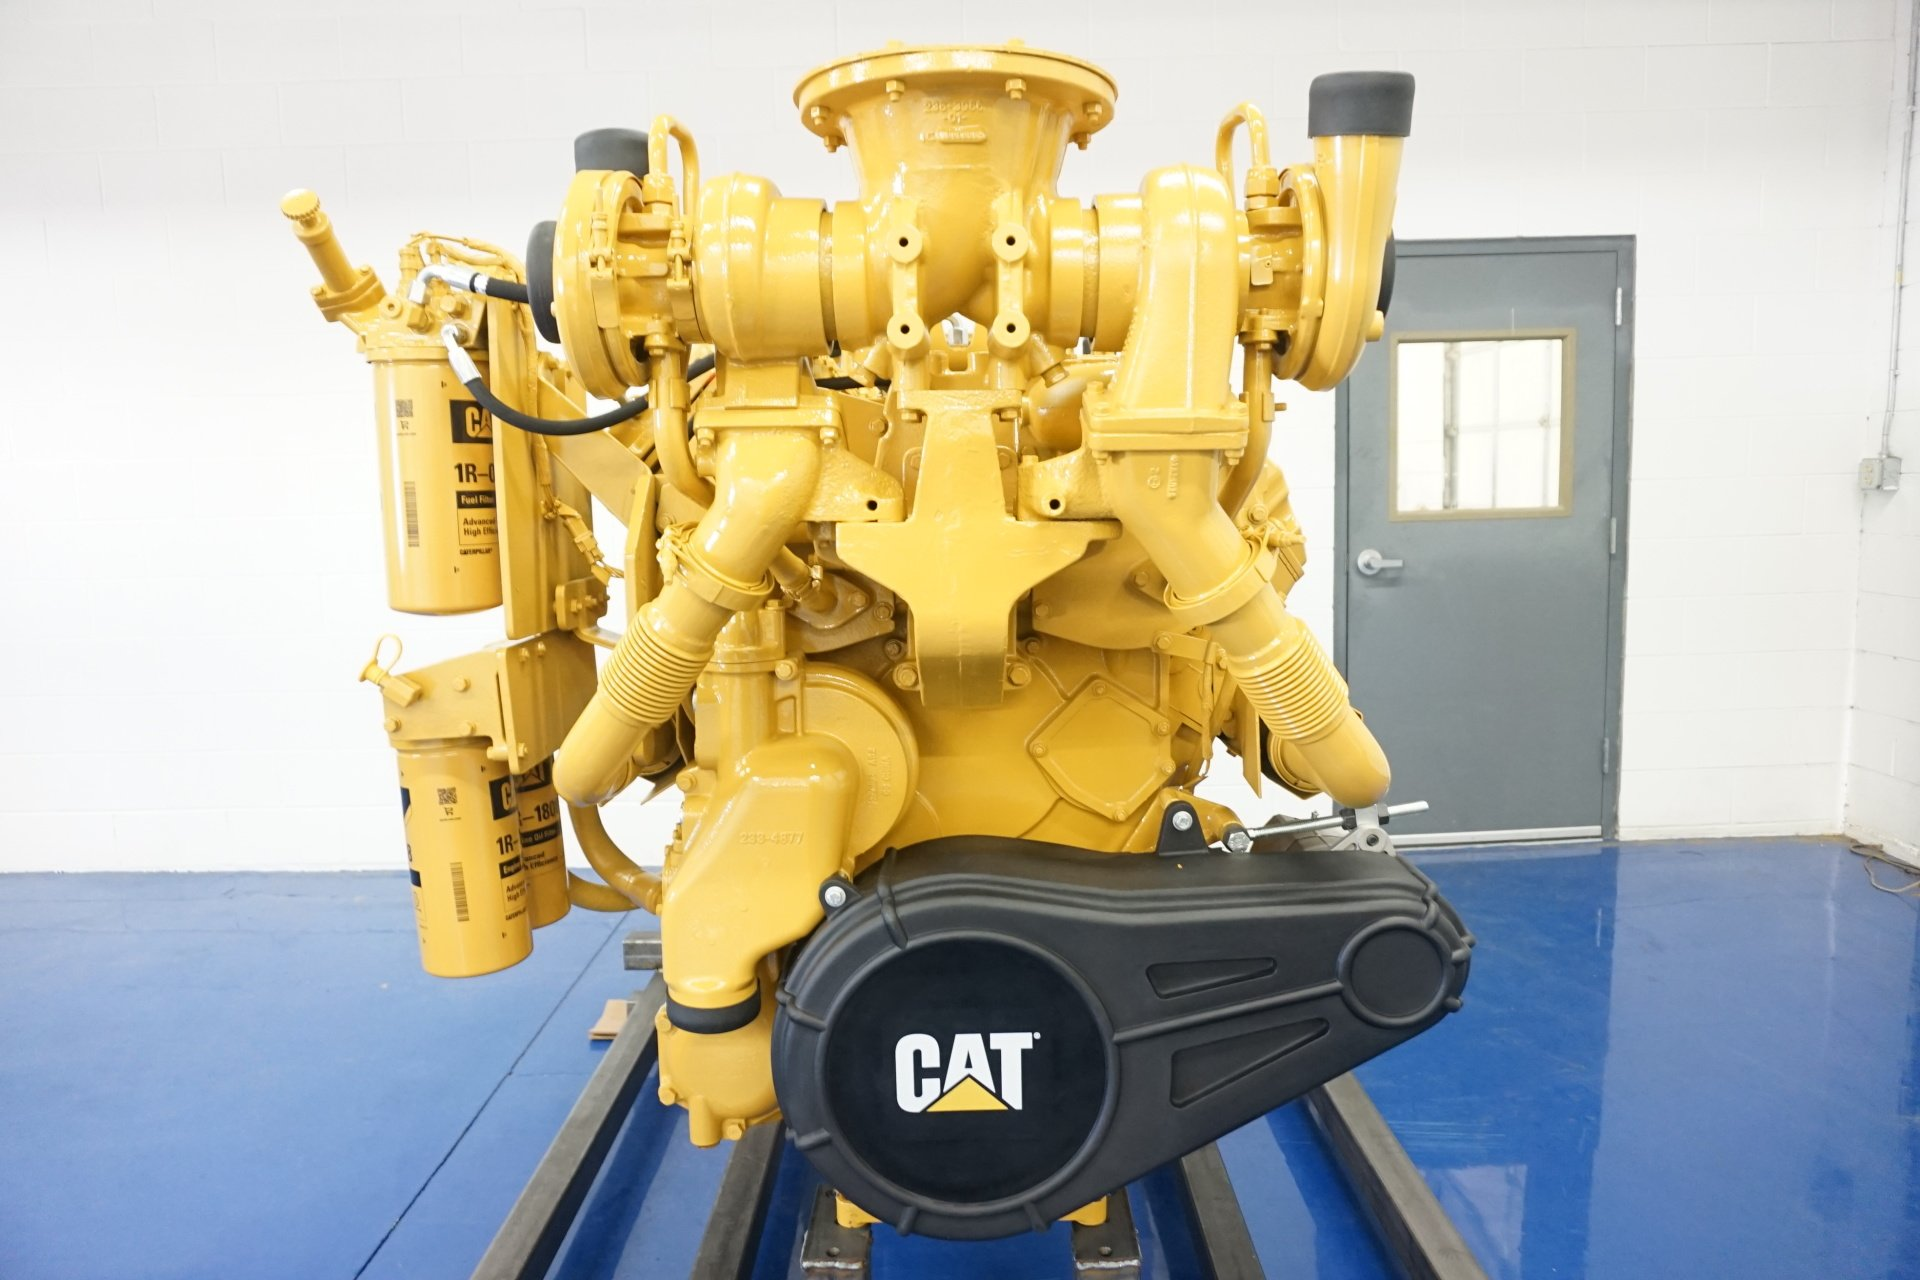 Cat Engines For Sale New And Rebuilt Caterpillar Motors 3306 Engine Diagram C32 Smp